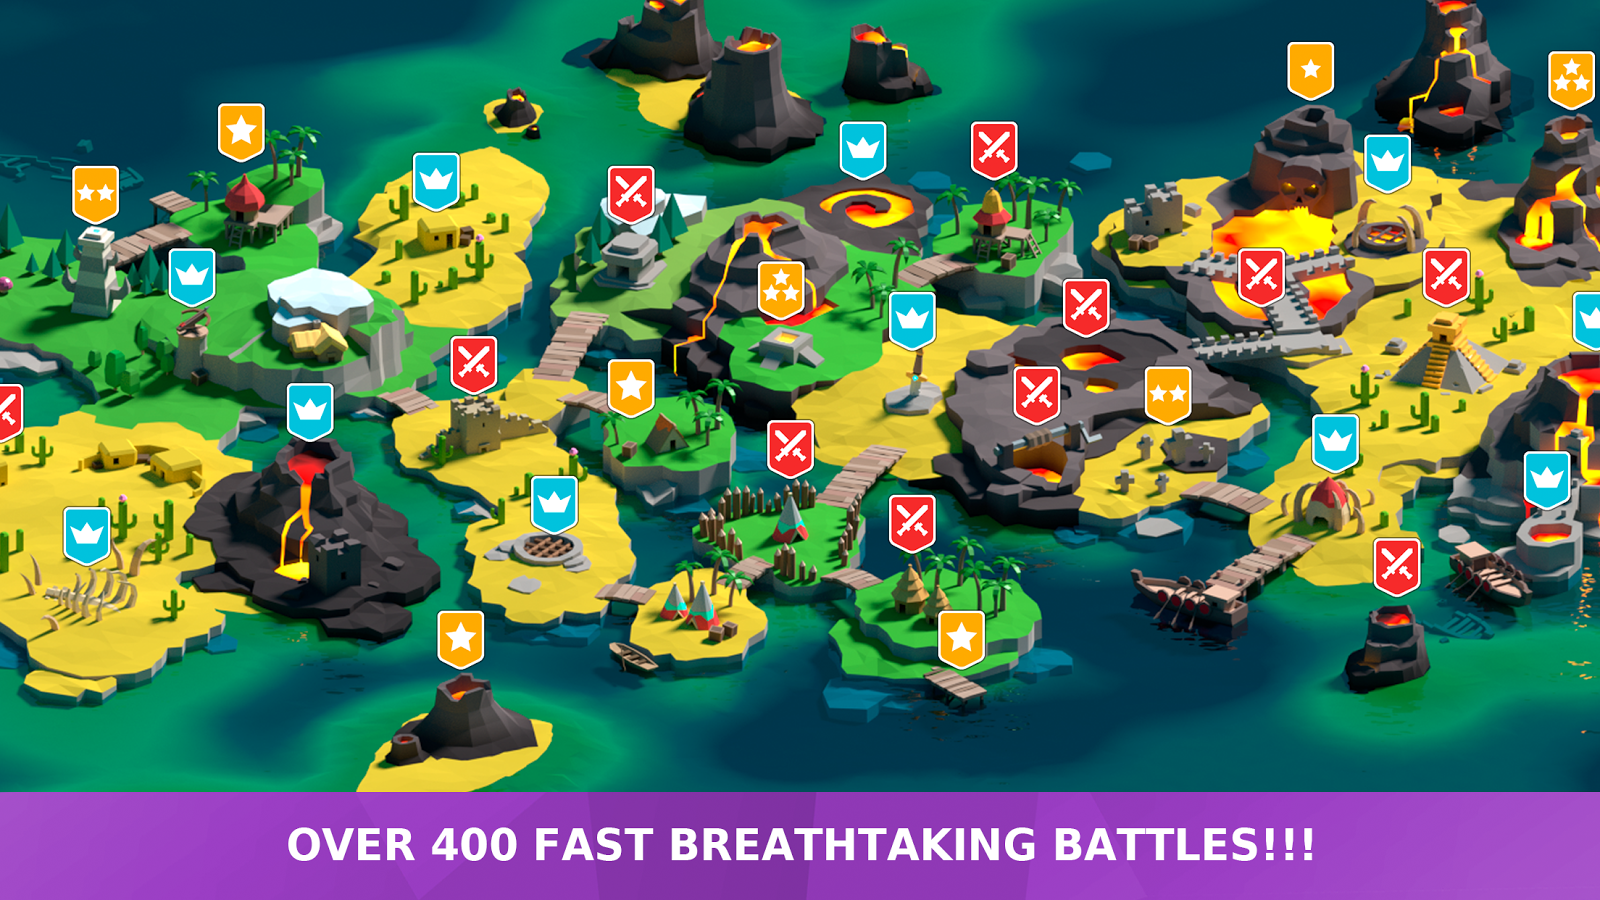 BattleTime Screenshot 5